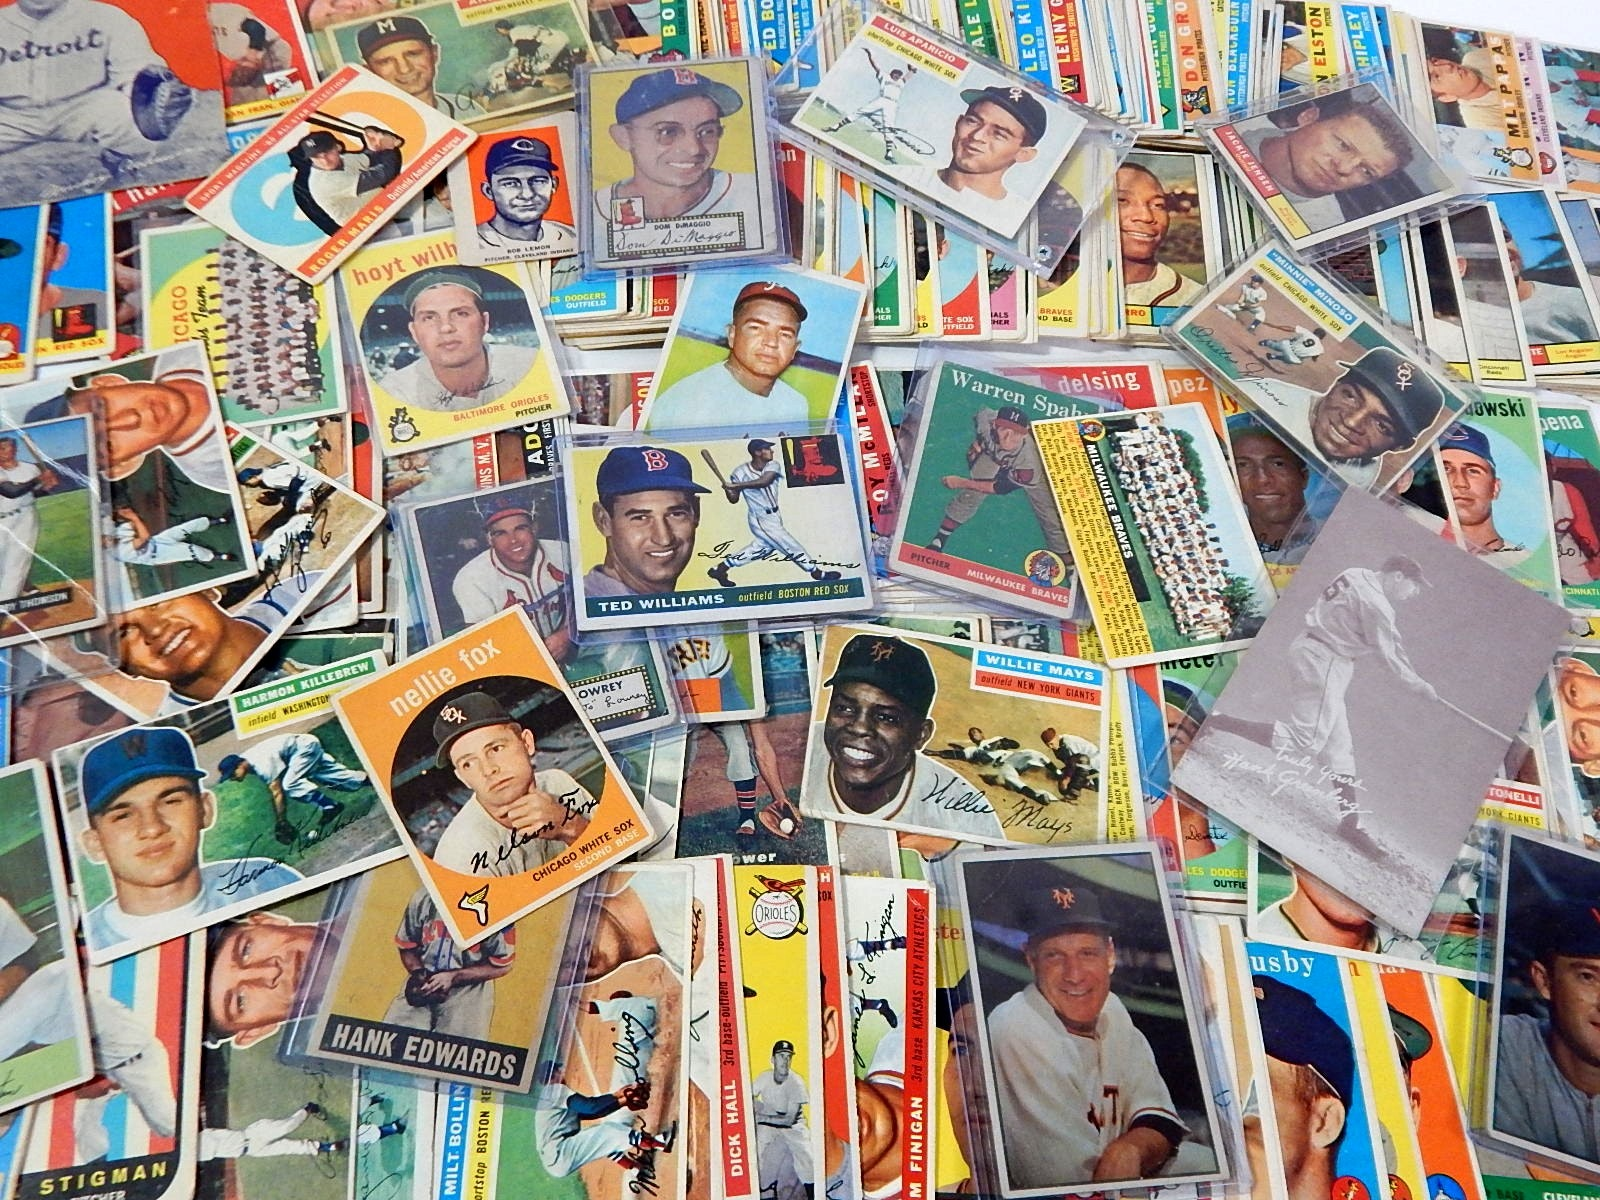 Large 1950s thru 1961 Baseball Card Lot with 1955 Topps Ted Williams - Over 300